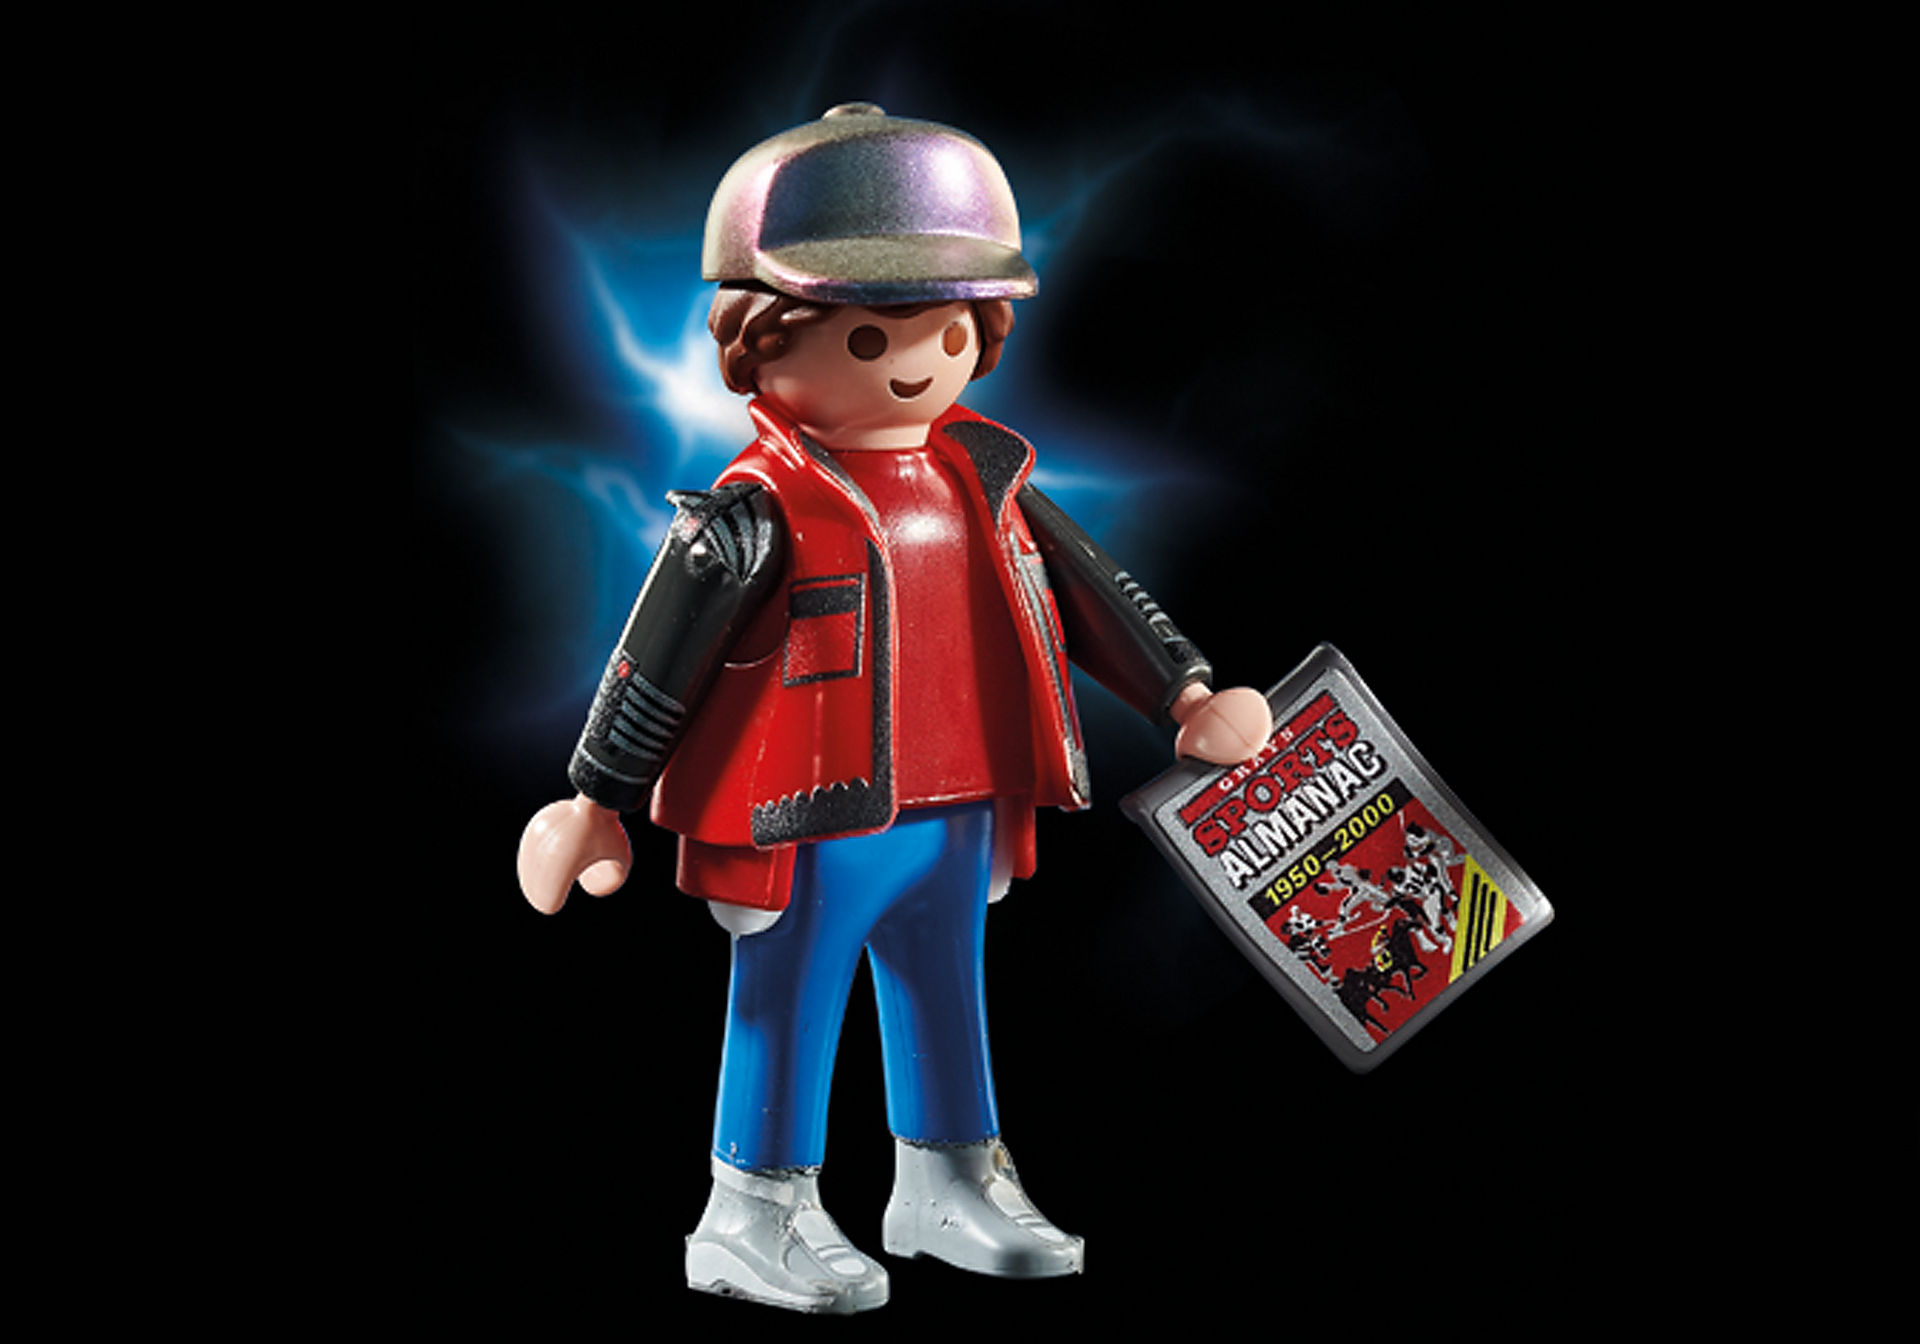 70634 Back to the Future Part II Hoverboard-jagten zoom image6